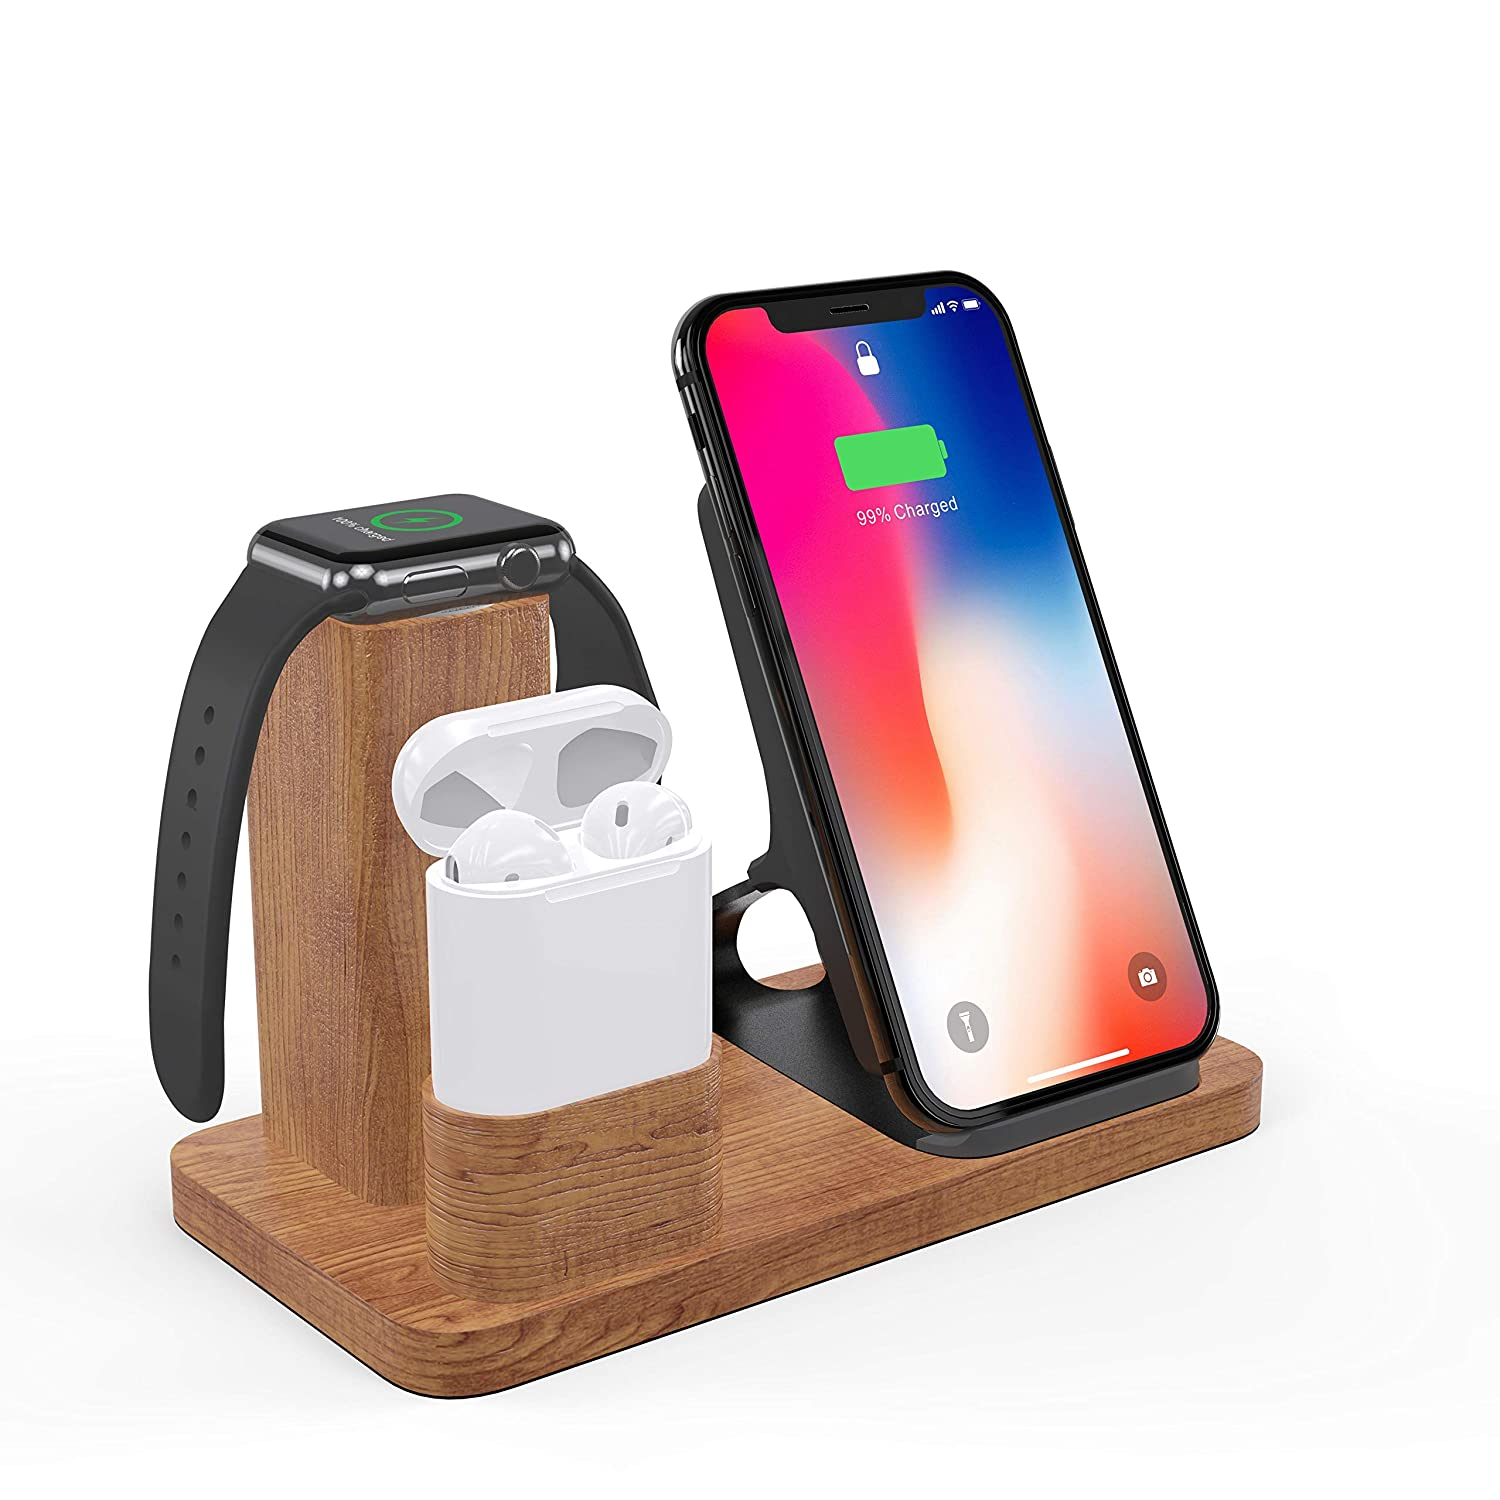 Solid Wood Wireless Charger Stand, LiZHi 3 in 1 Charging Station Docks for AirPods 2/1 Apple Watch Series 5/4/3/2/1 iPhone X/8/8 Plus iPhone Xs/XR/XS ...